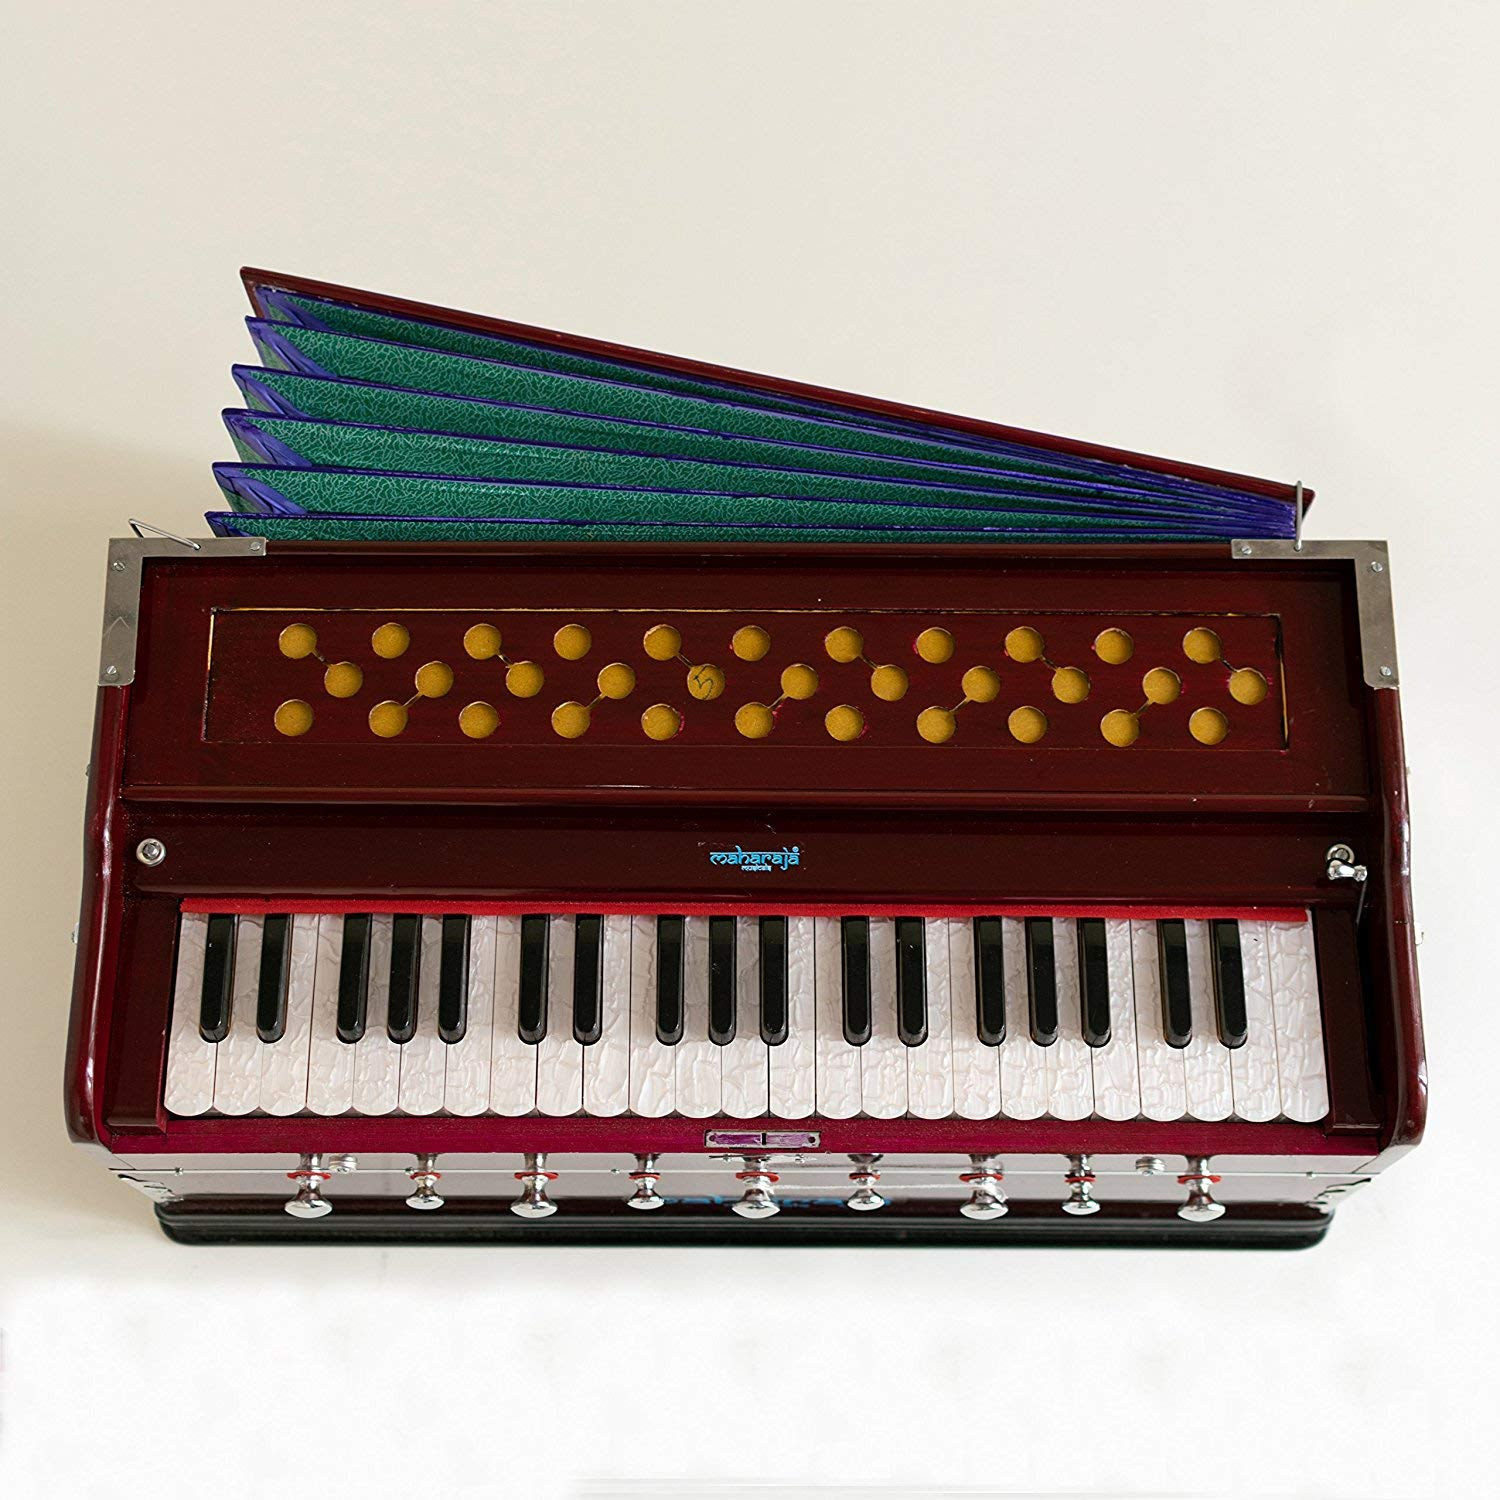 Harmonium Musical Instrument, Maharaja Musicals, 9 Stops, 3 1/2 Octave, Double Reed, Coupler, Dark Mahogany, Standard, Book, Padded Bag, A440 Tuned, Indian Sangeeta Harmonium (PDI-43) by Maharaja Musicals